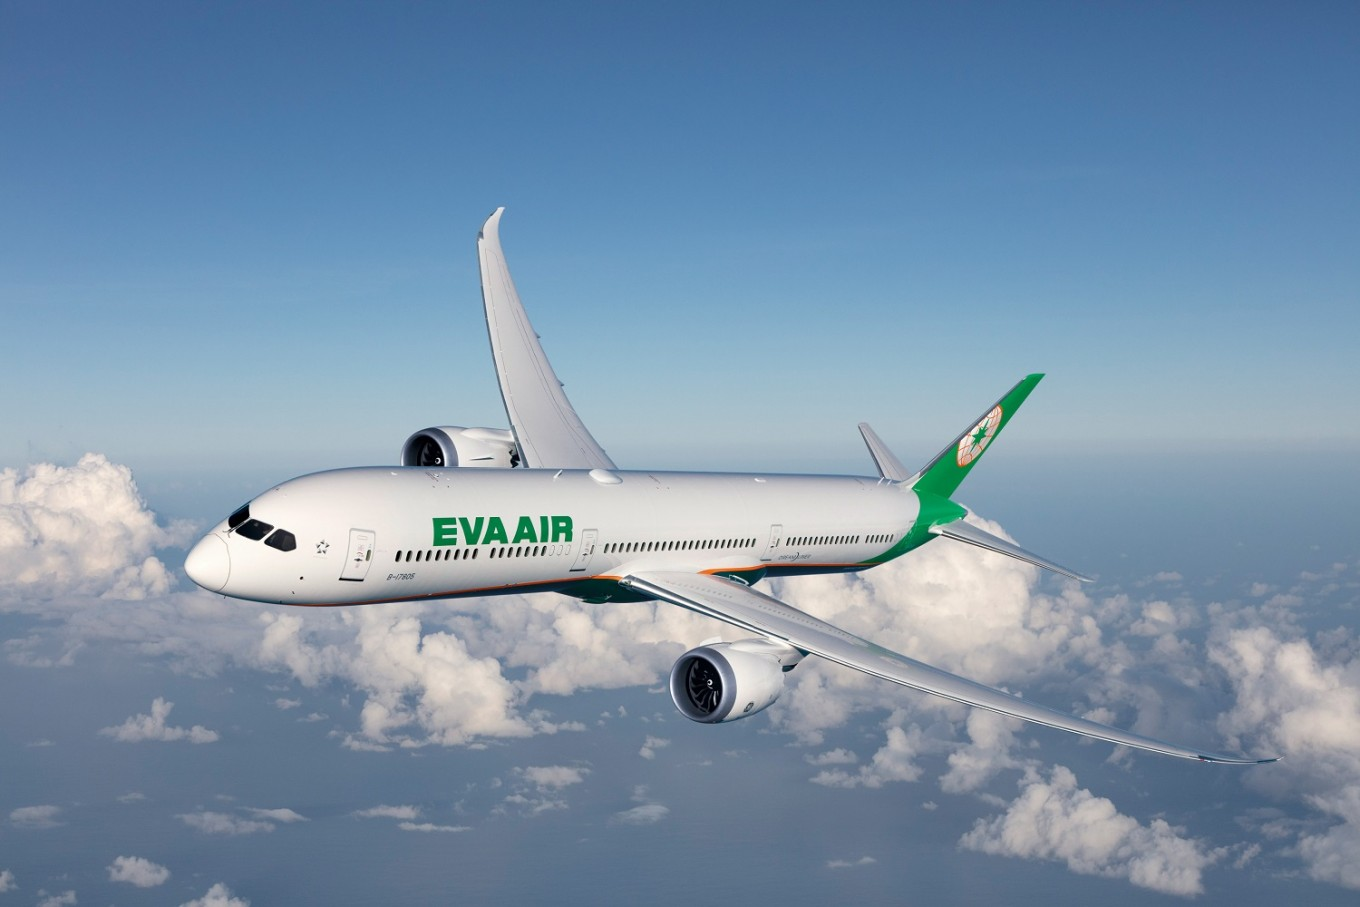 EVA Air to open direct flight from Taipei to Phuket in April